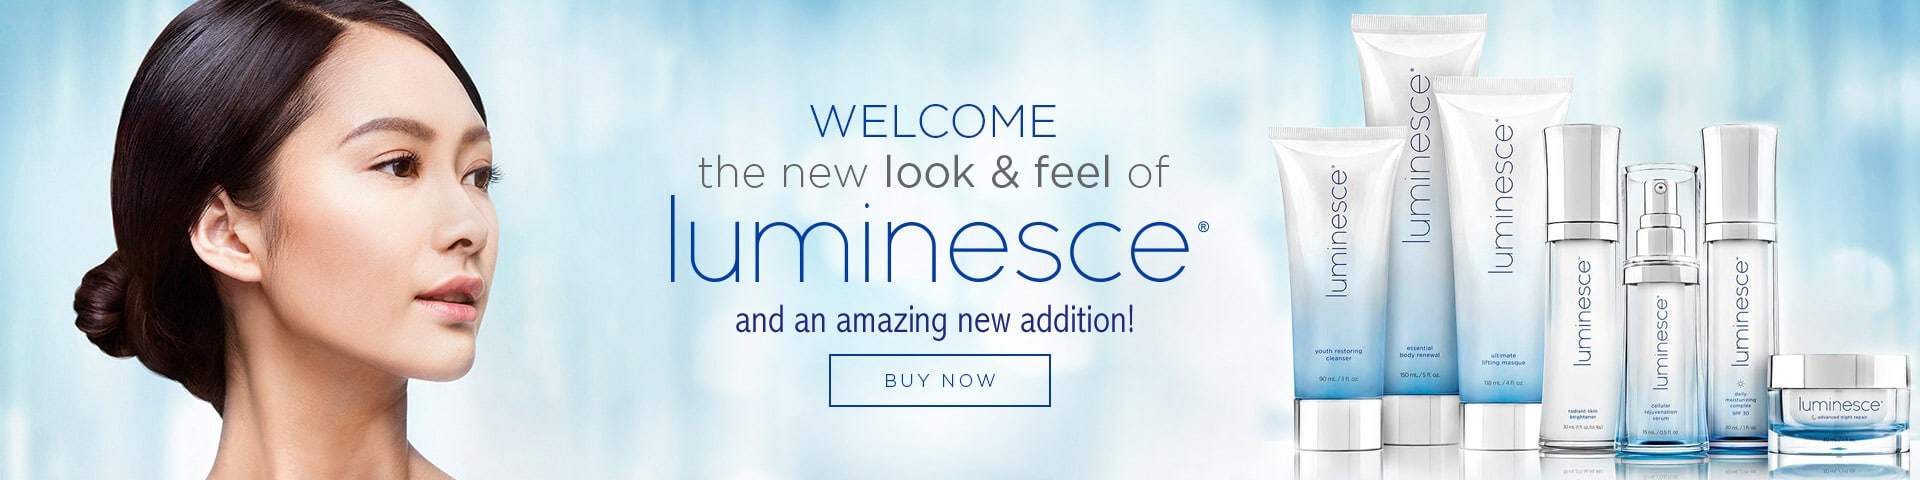 slider-homepage-luminesce-refresh